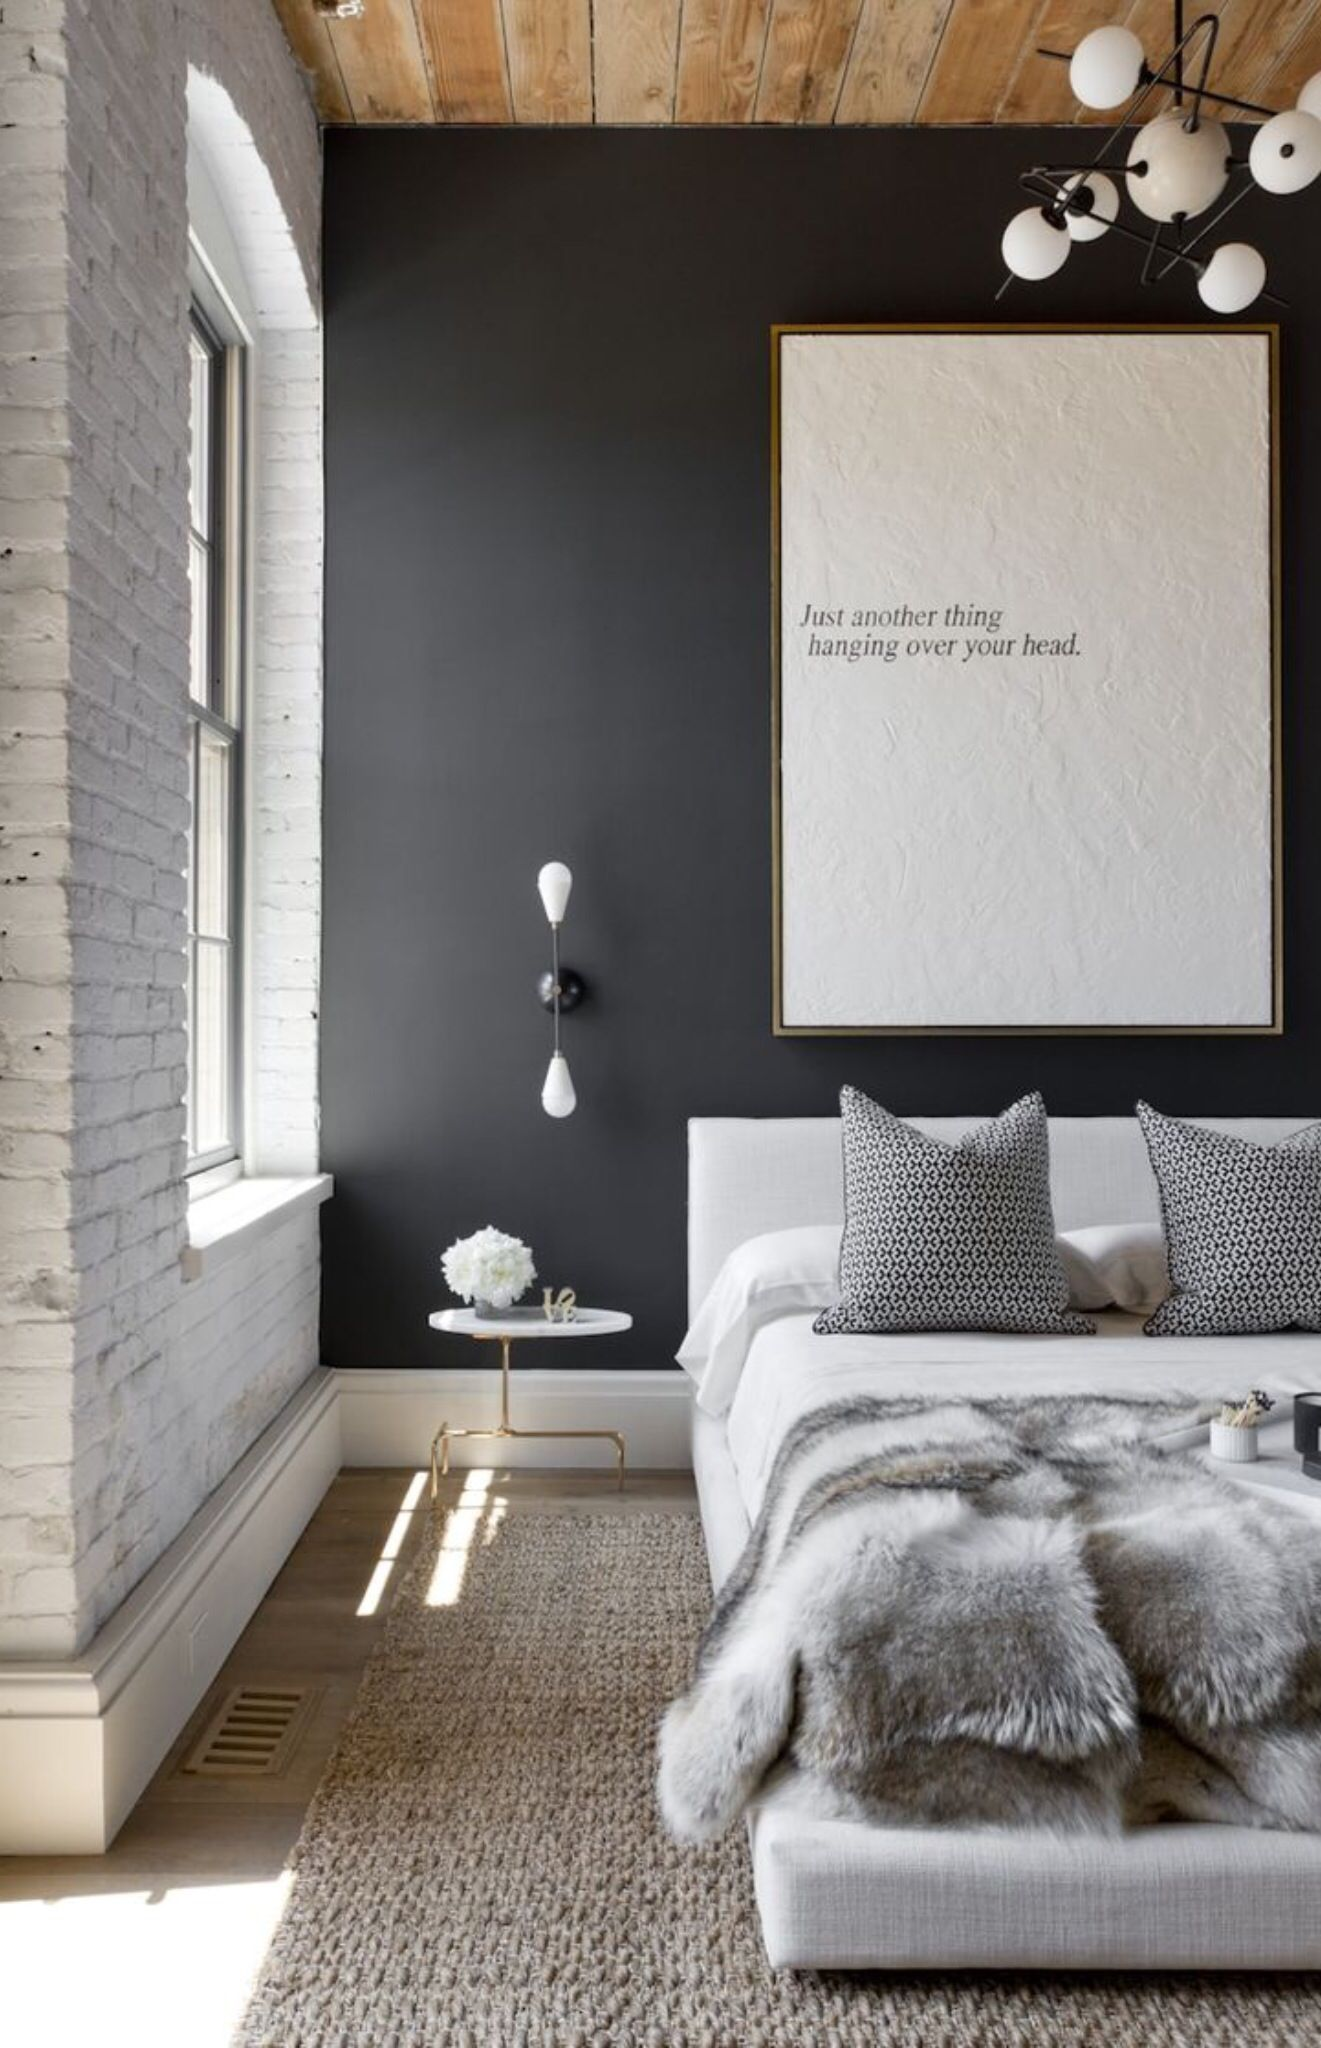 A Warm And Inviting Bedroom Sporting A Black Feature Wall If Your